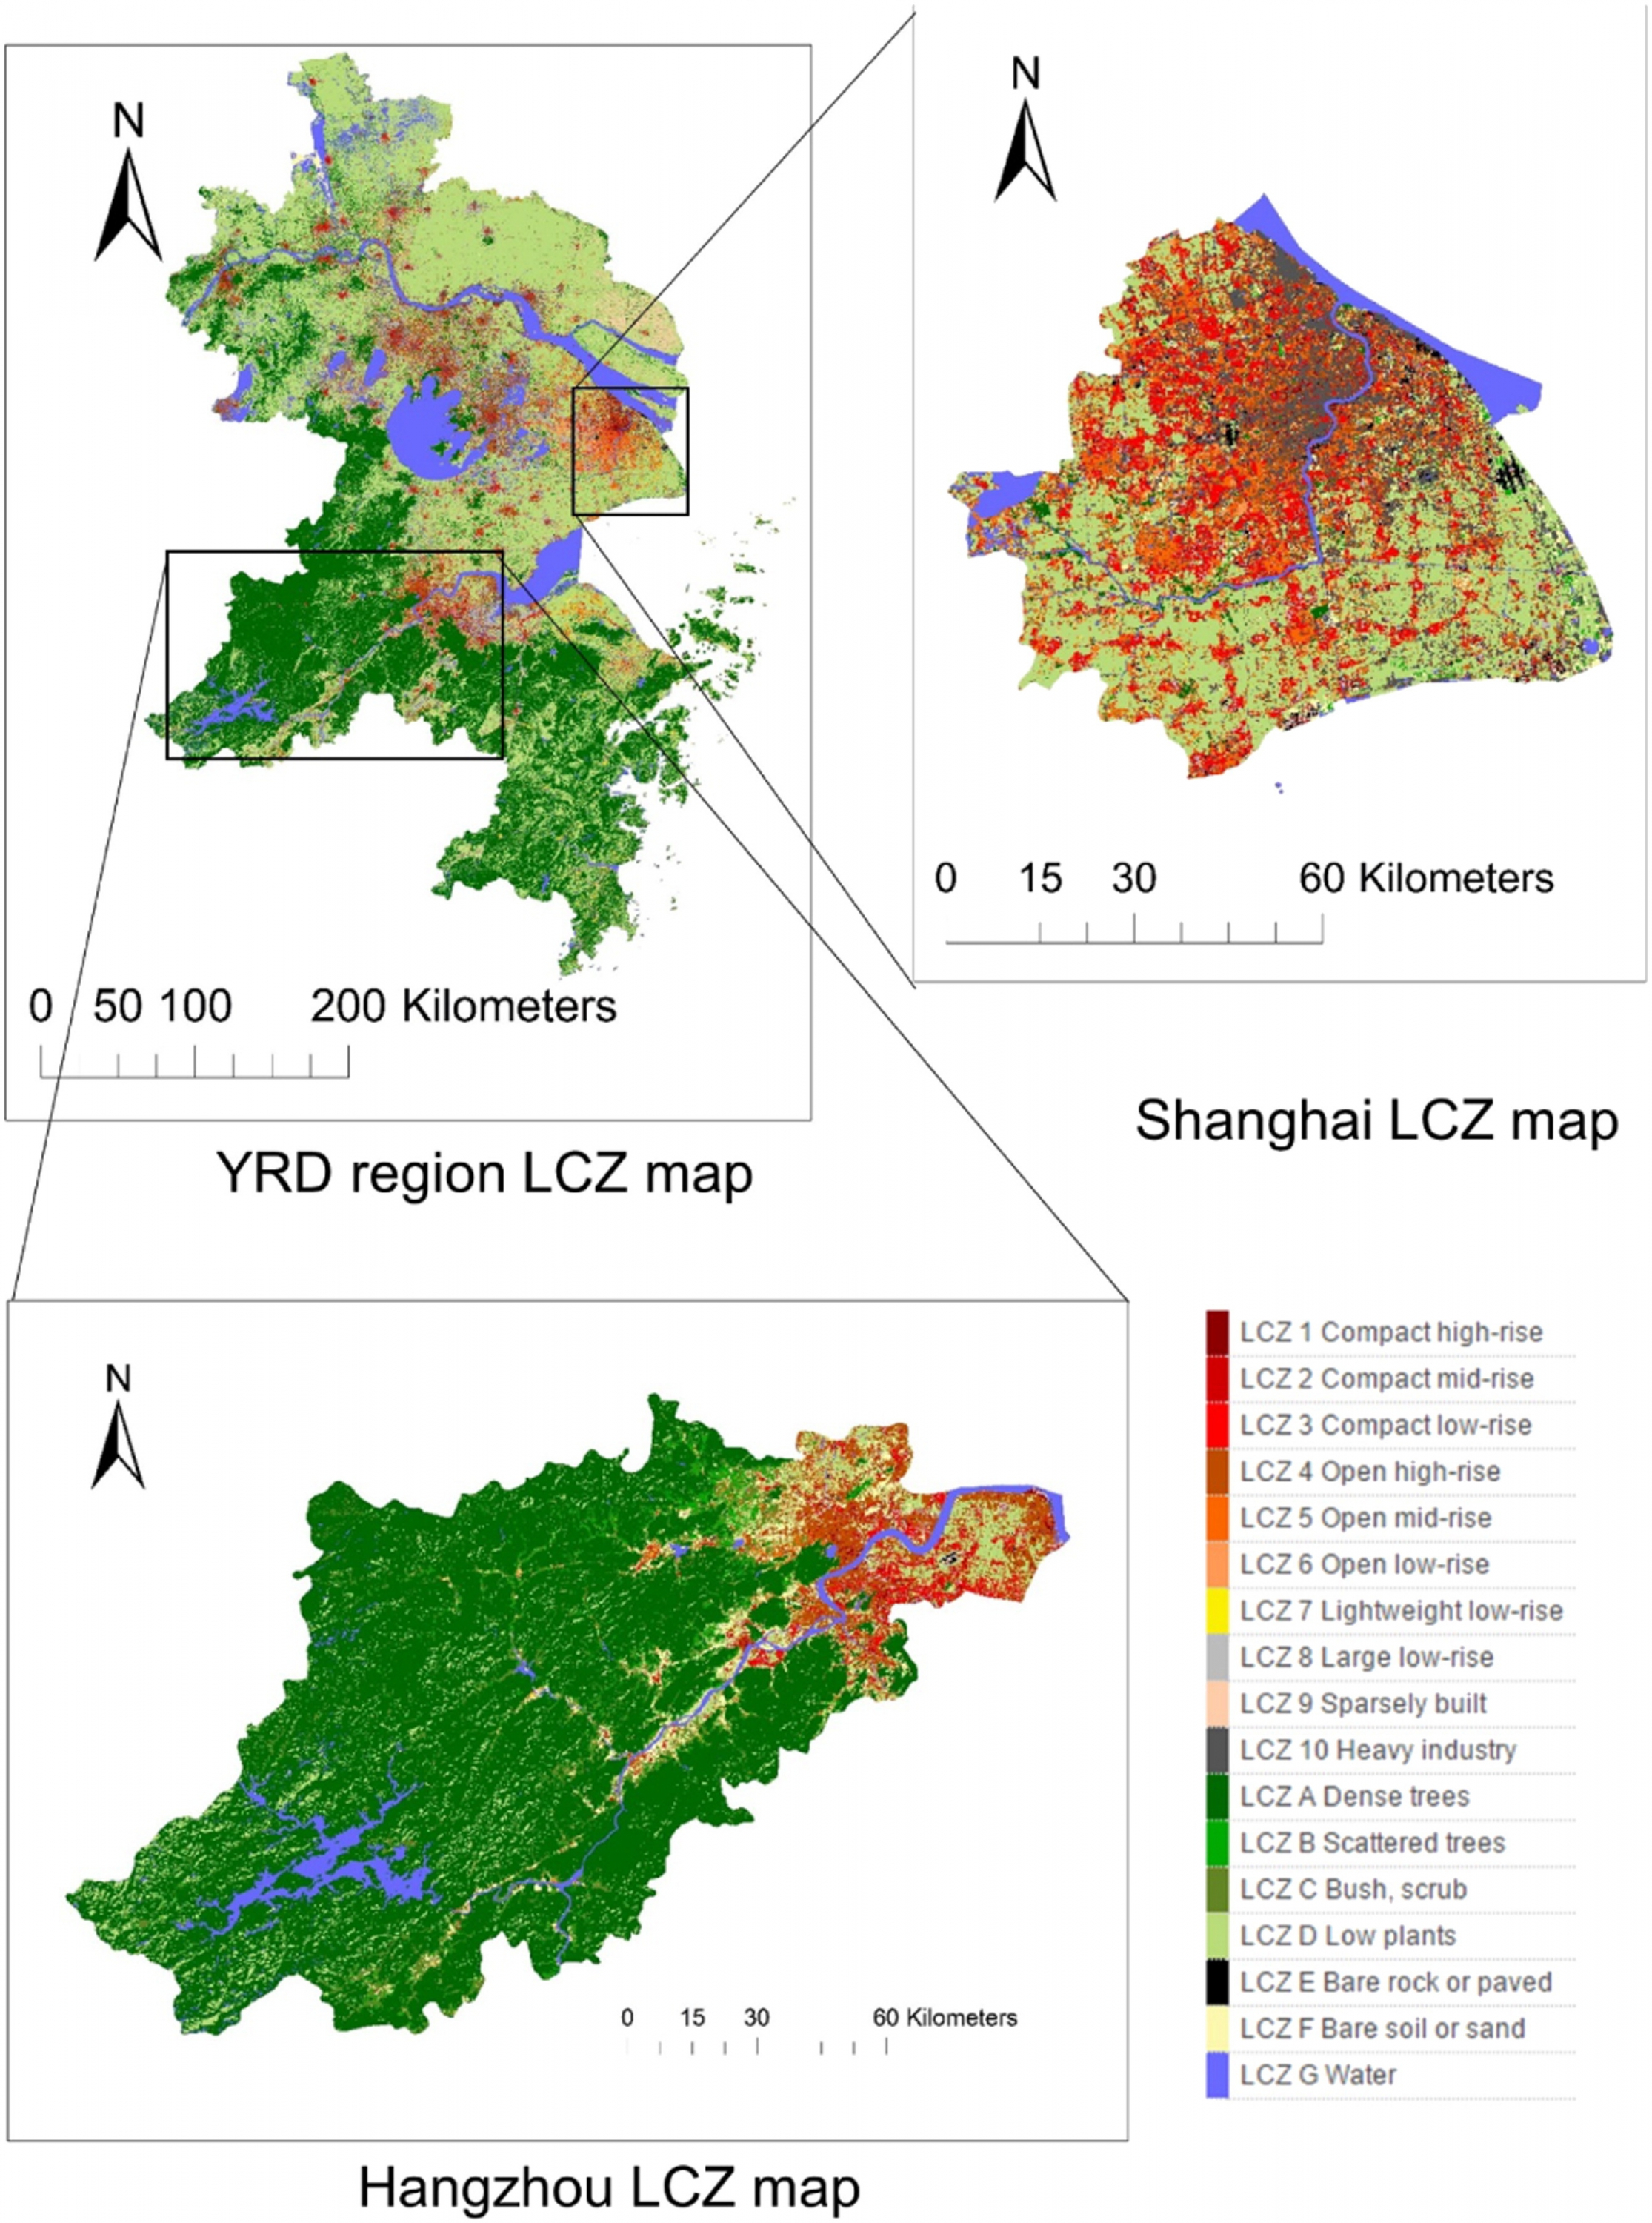 The local climate zone map of Yangtze River Delta in China.